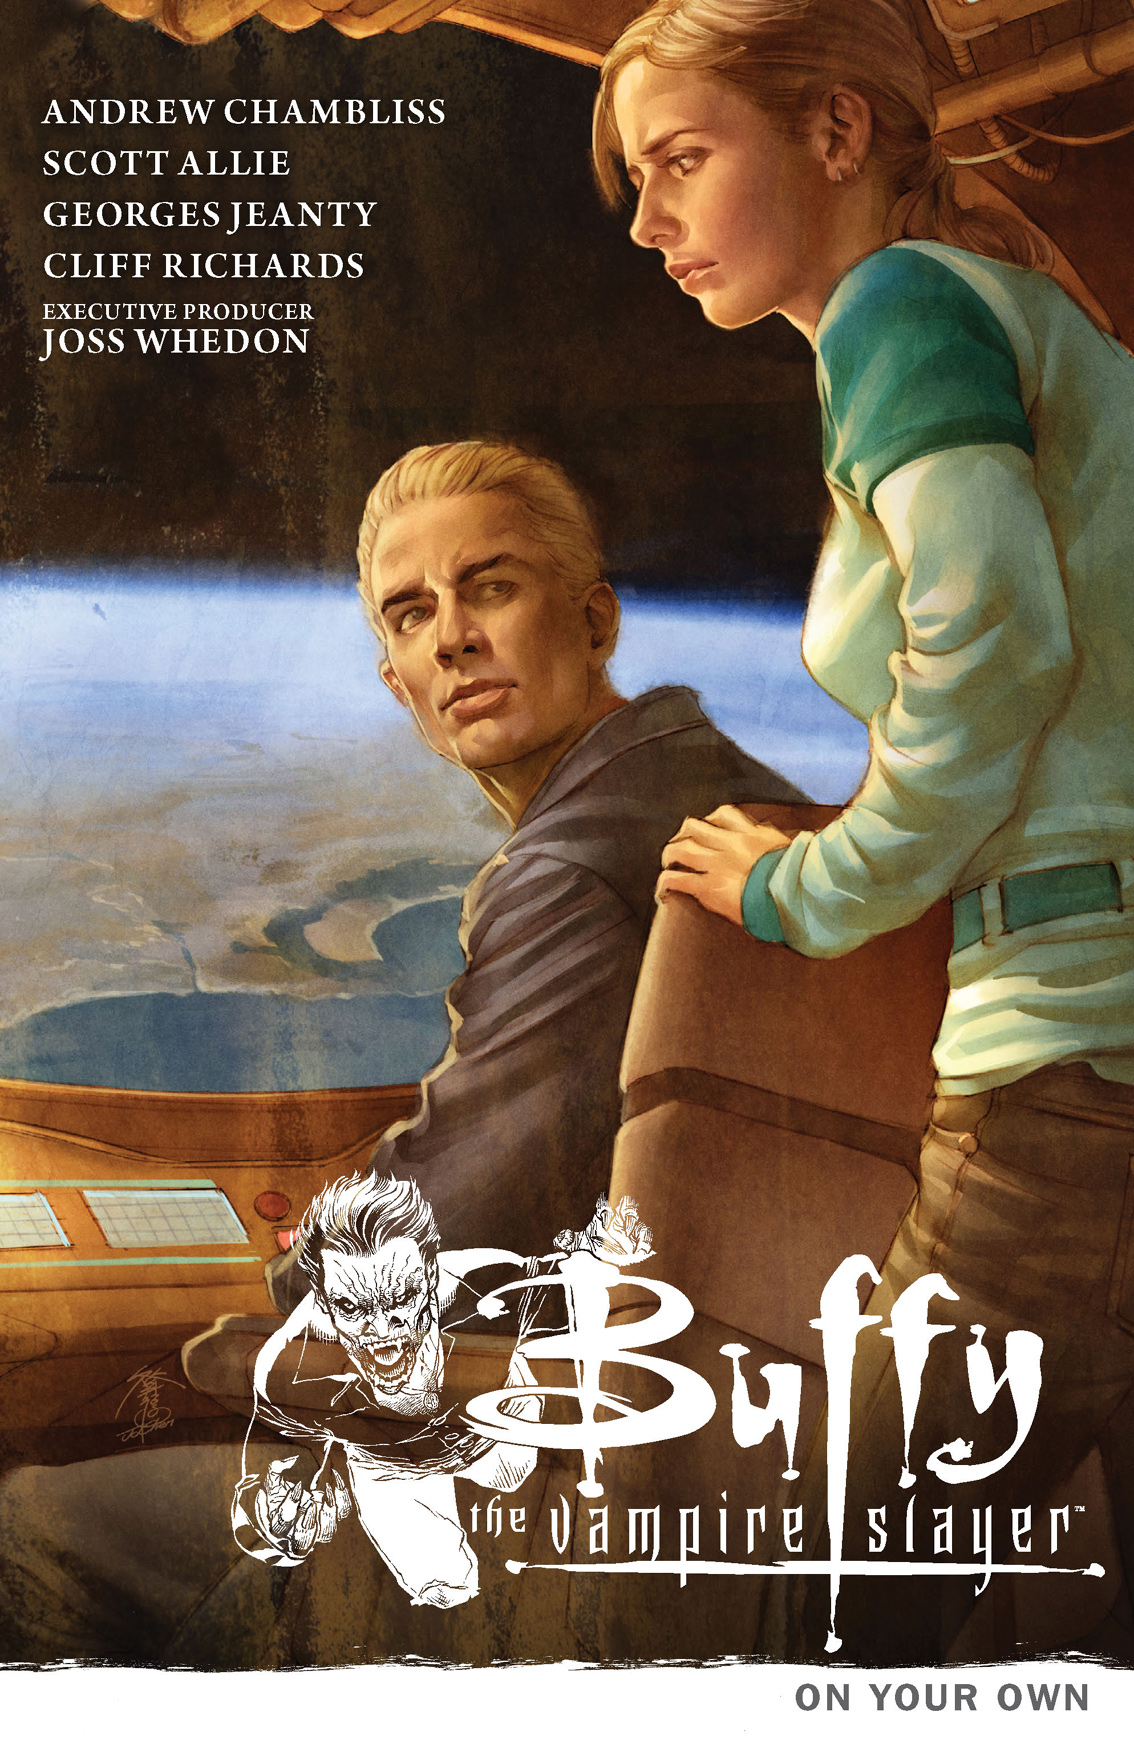 Buffy the Vampire Slayer Season 9 Volume 2: On Your Own By: Andrew Chambliss,Cliff Richards,Georges Jeanty